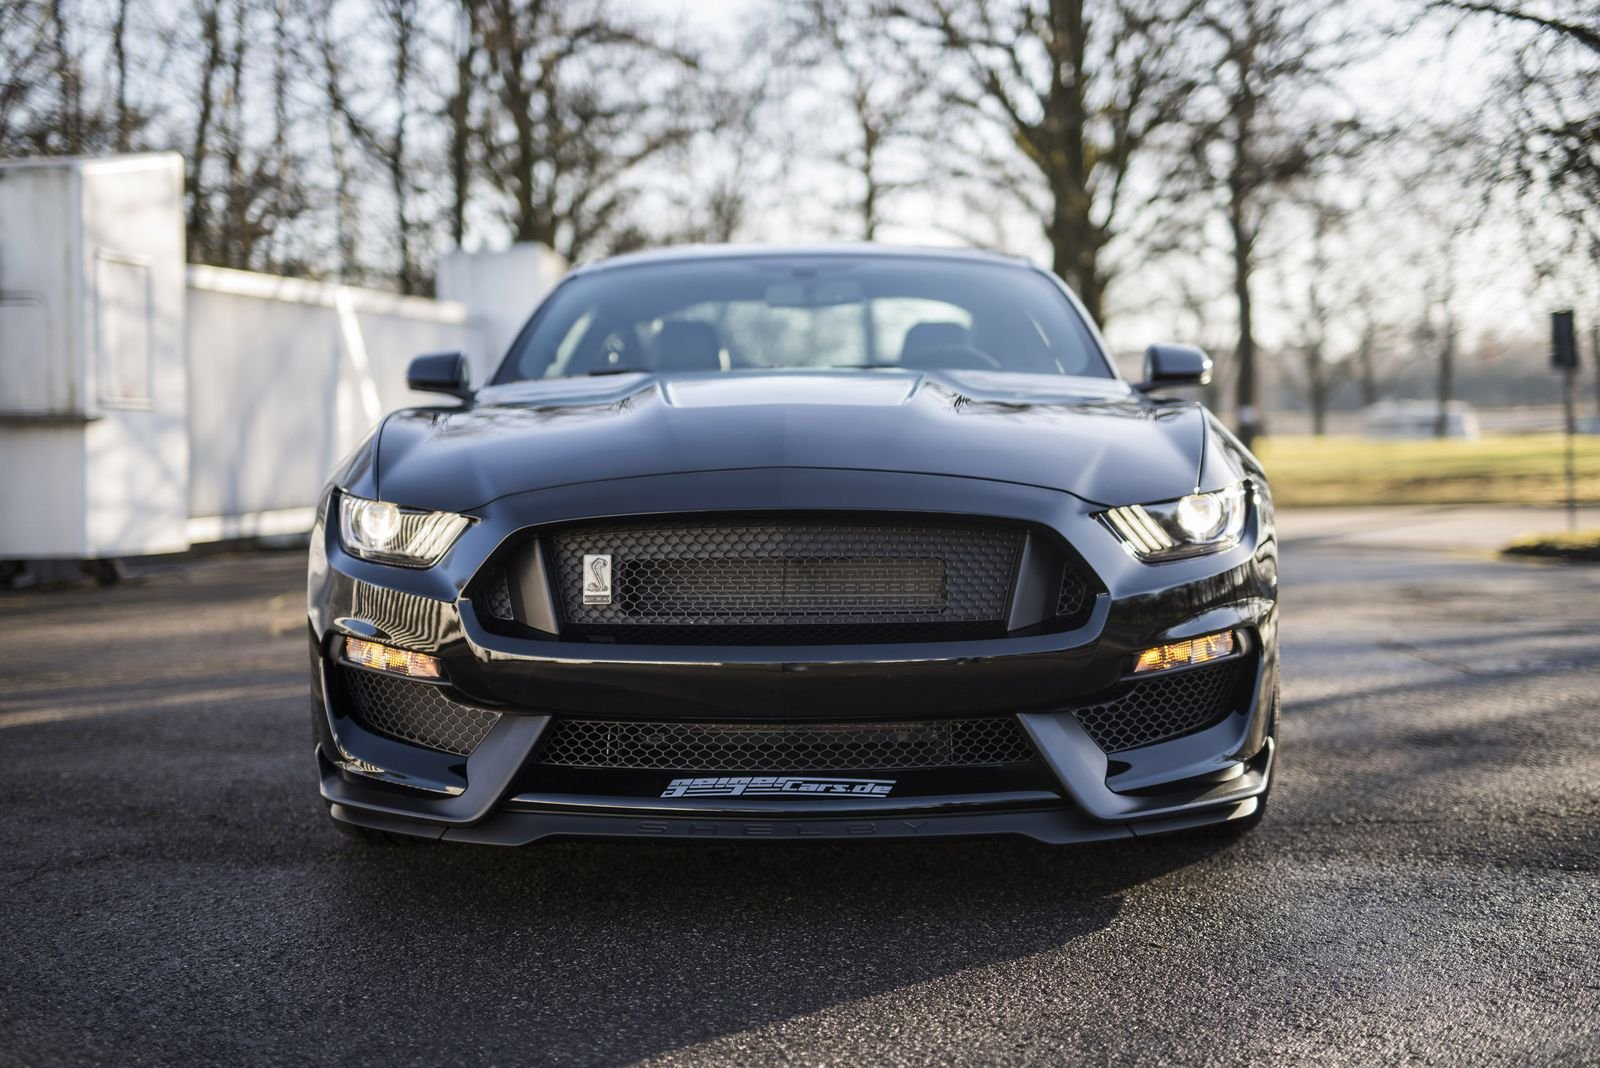 Préféré How To Get a GT350 in Europe! - AllFordMustangs AL81